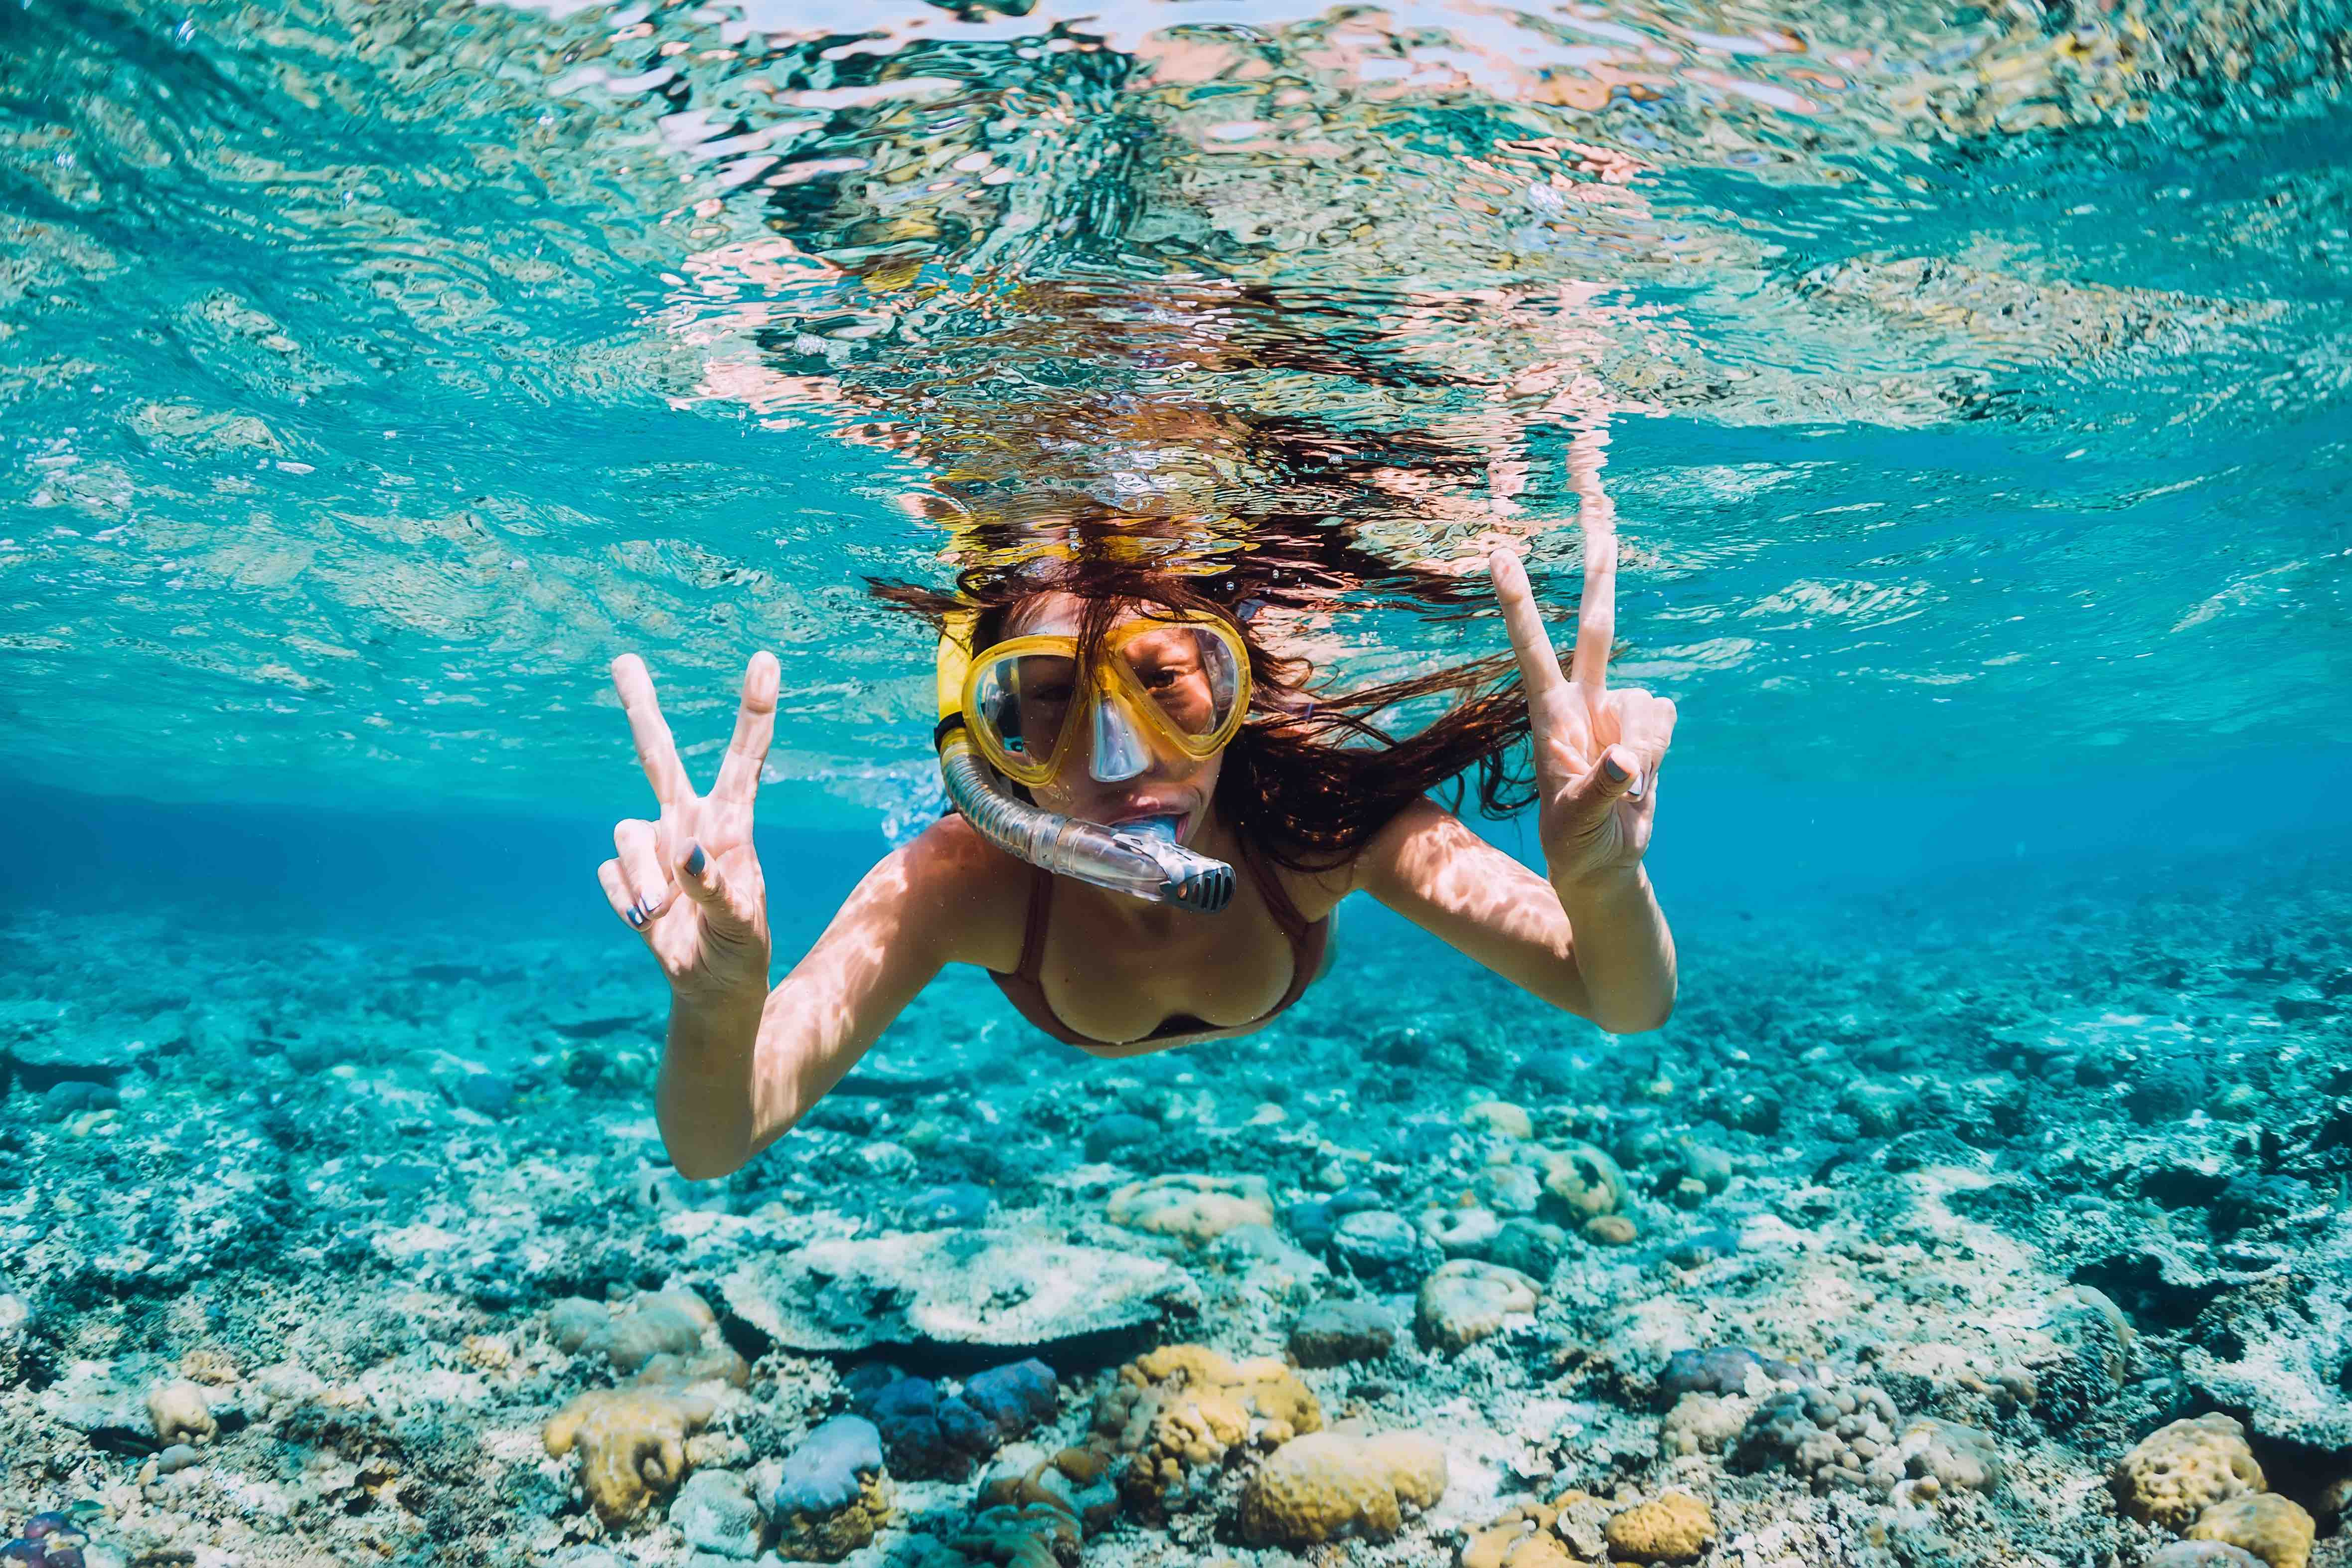 Getting A Good Deal On Scuba Diving & Snorkeling In The